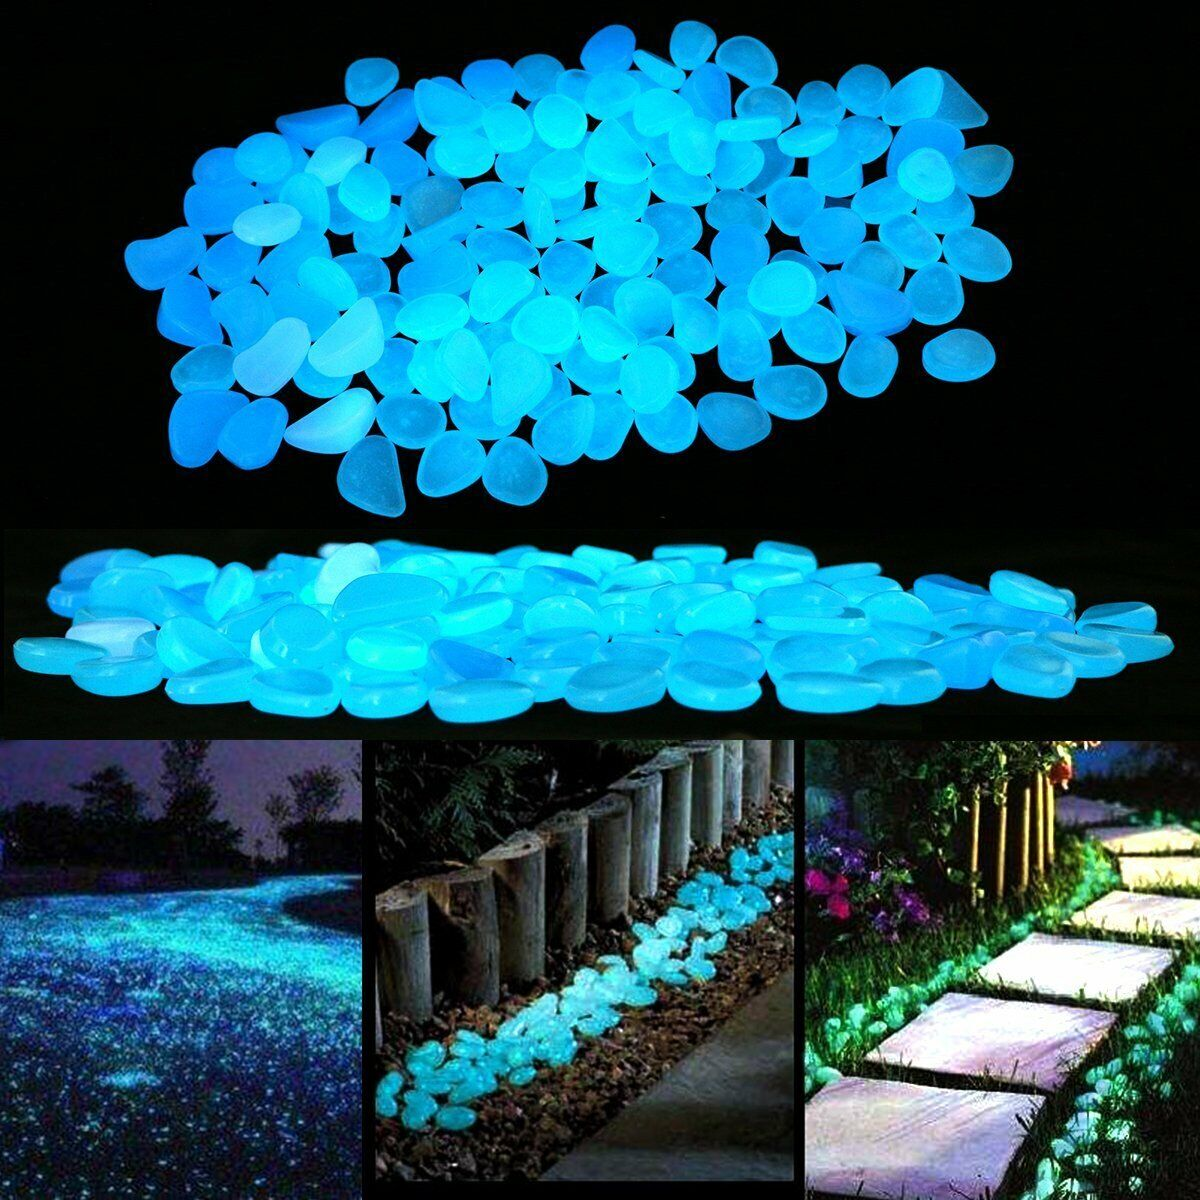 100x Large Pebbles Stone Home Garden Walkway Aquarium Fish Tank Glow in the Dark